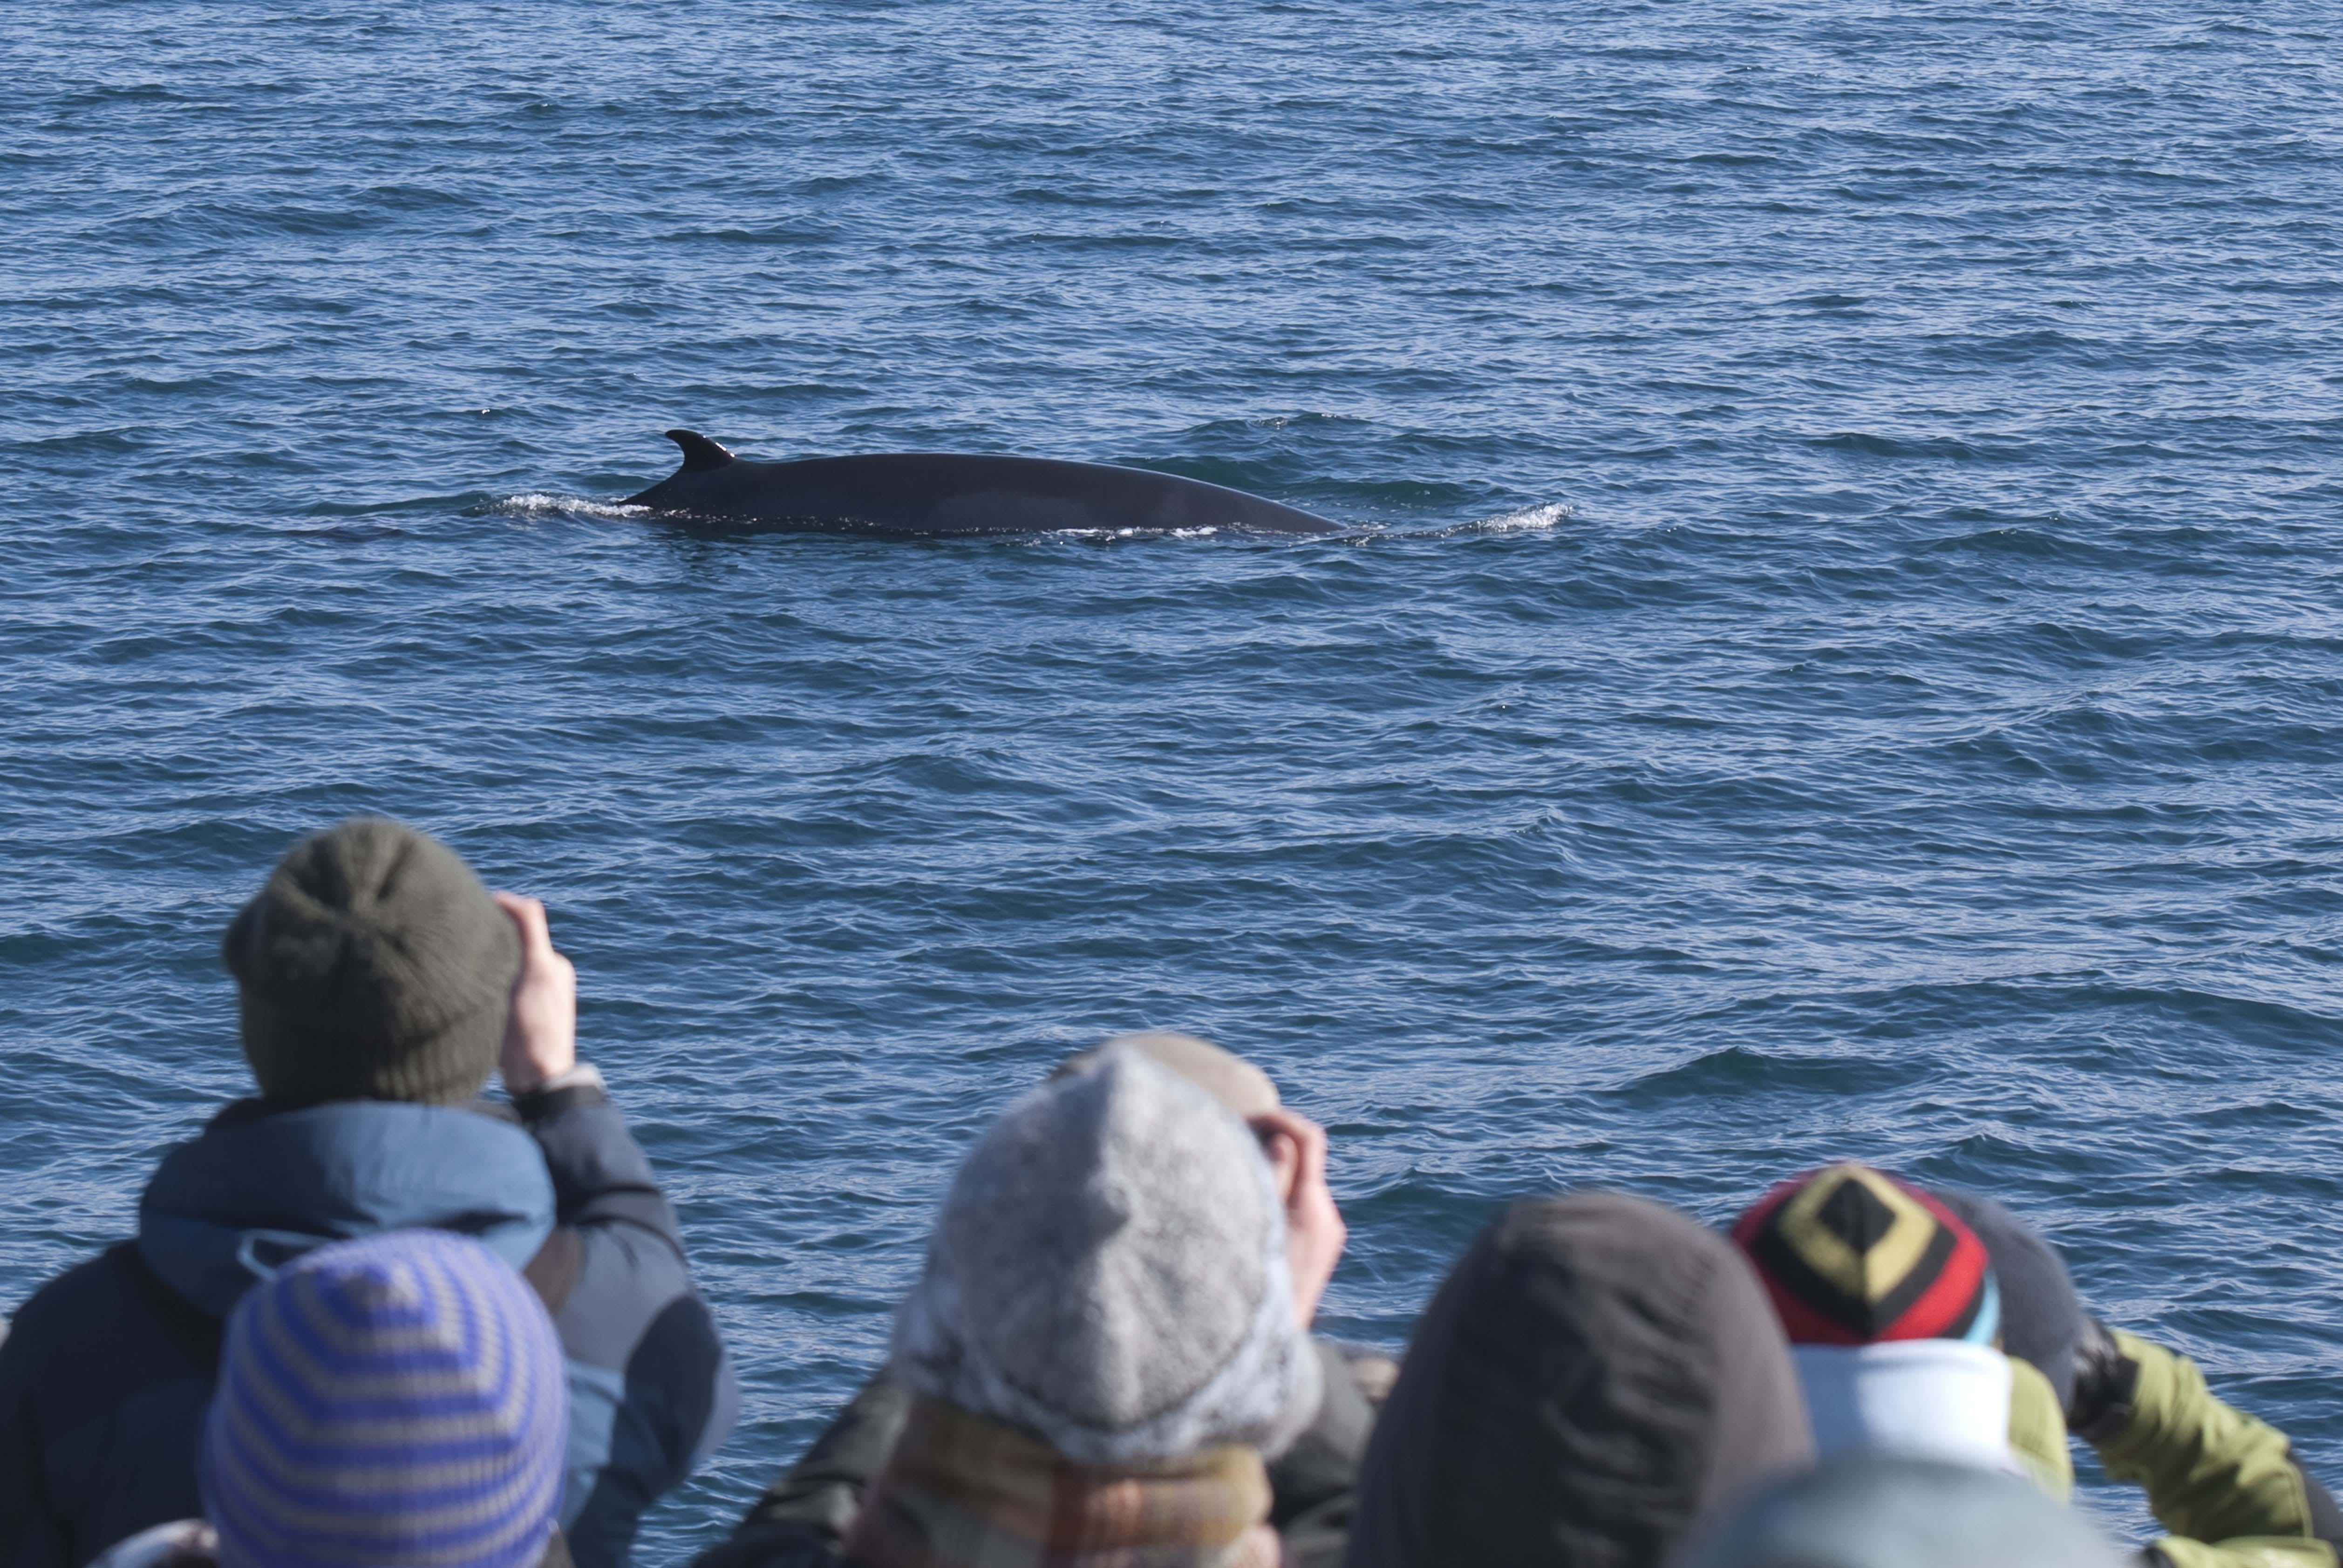 Close up | Whale Watching Tour with Puffins & Reykjavík Coast